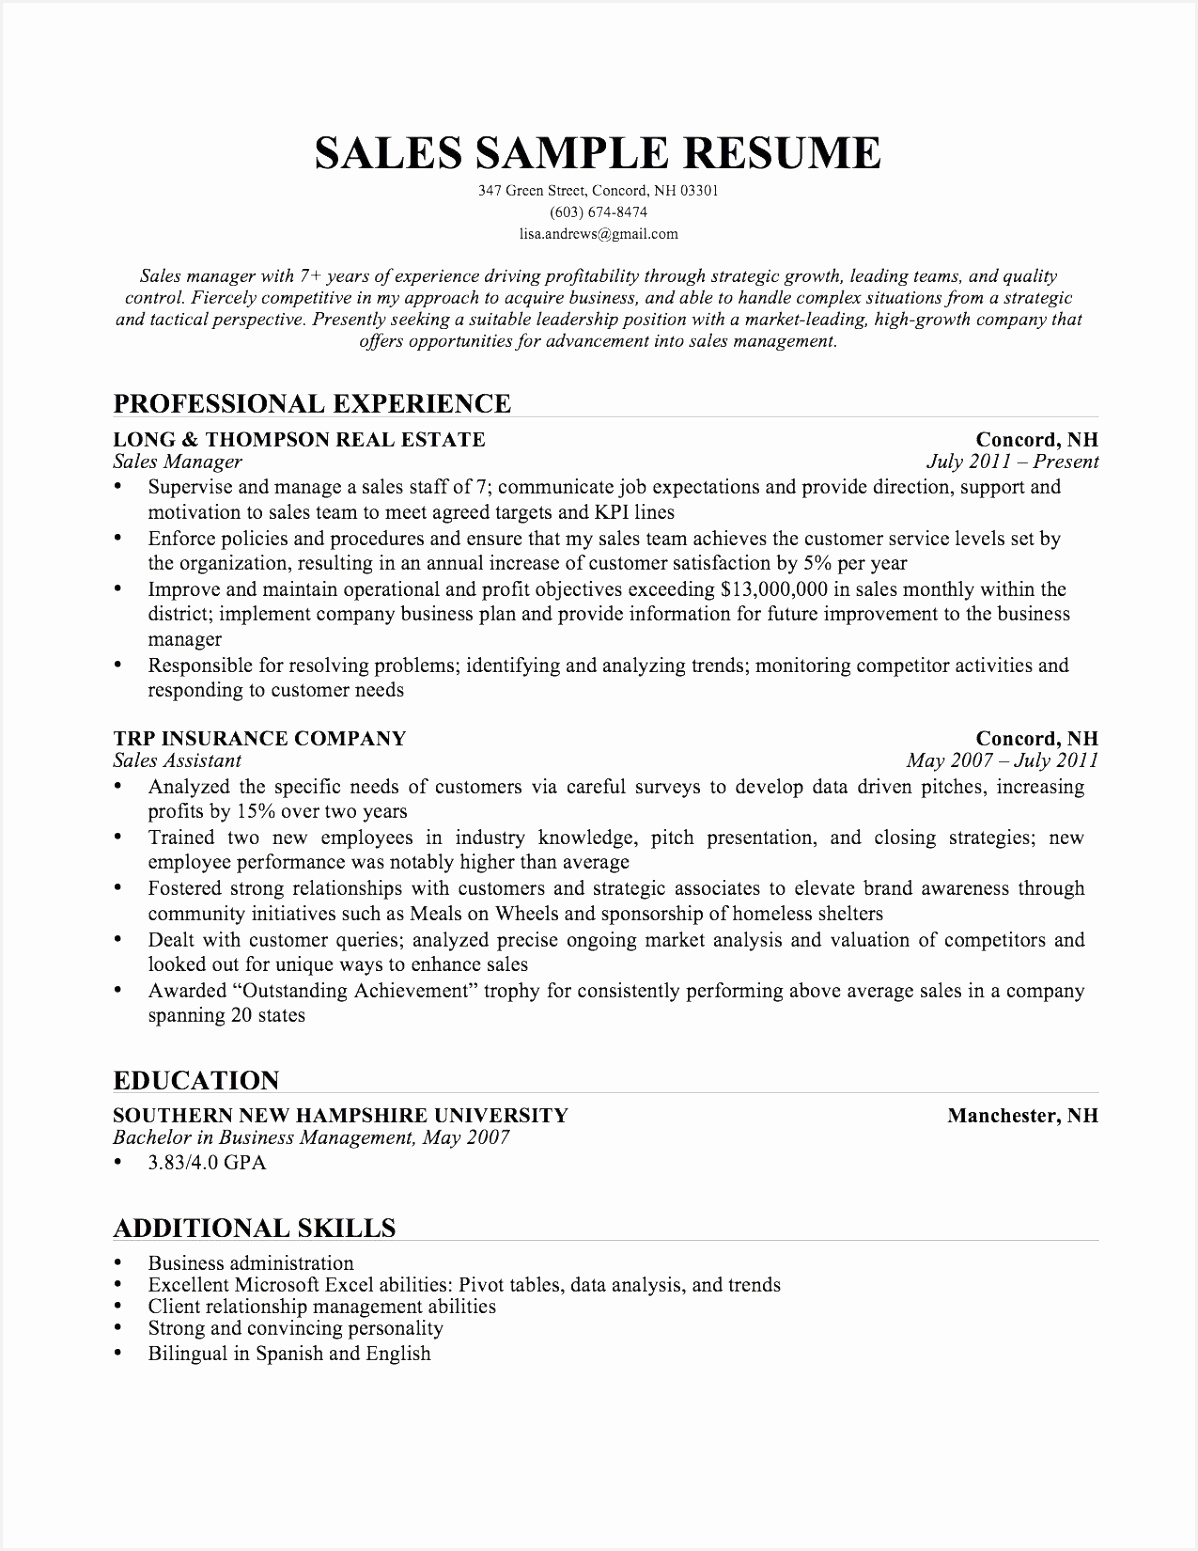 Sample Of Resumes for Jobs Clhdn Elegant Team Lead Job Description Resume In Resume for Chef Cook Chef Resume Of 6 Sample Of Resumes for Jobs